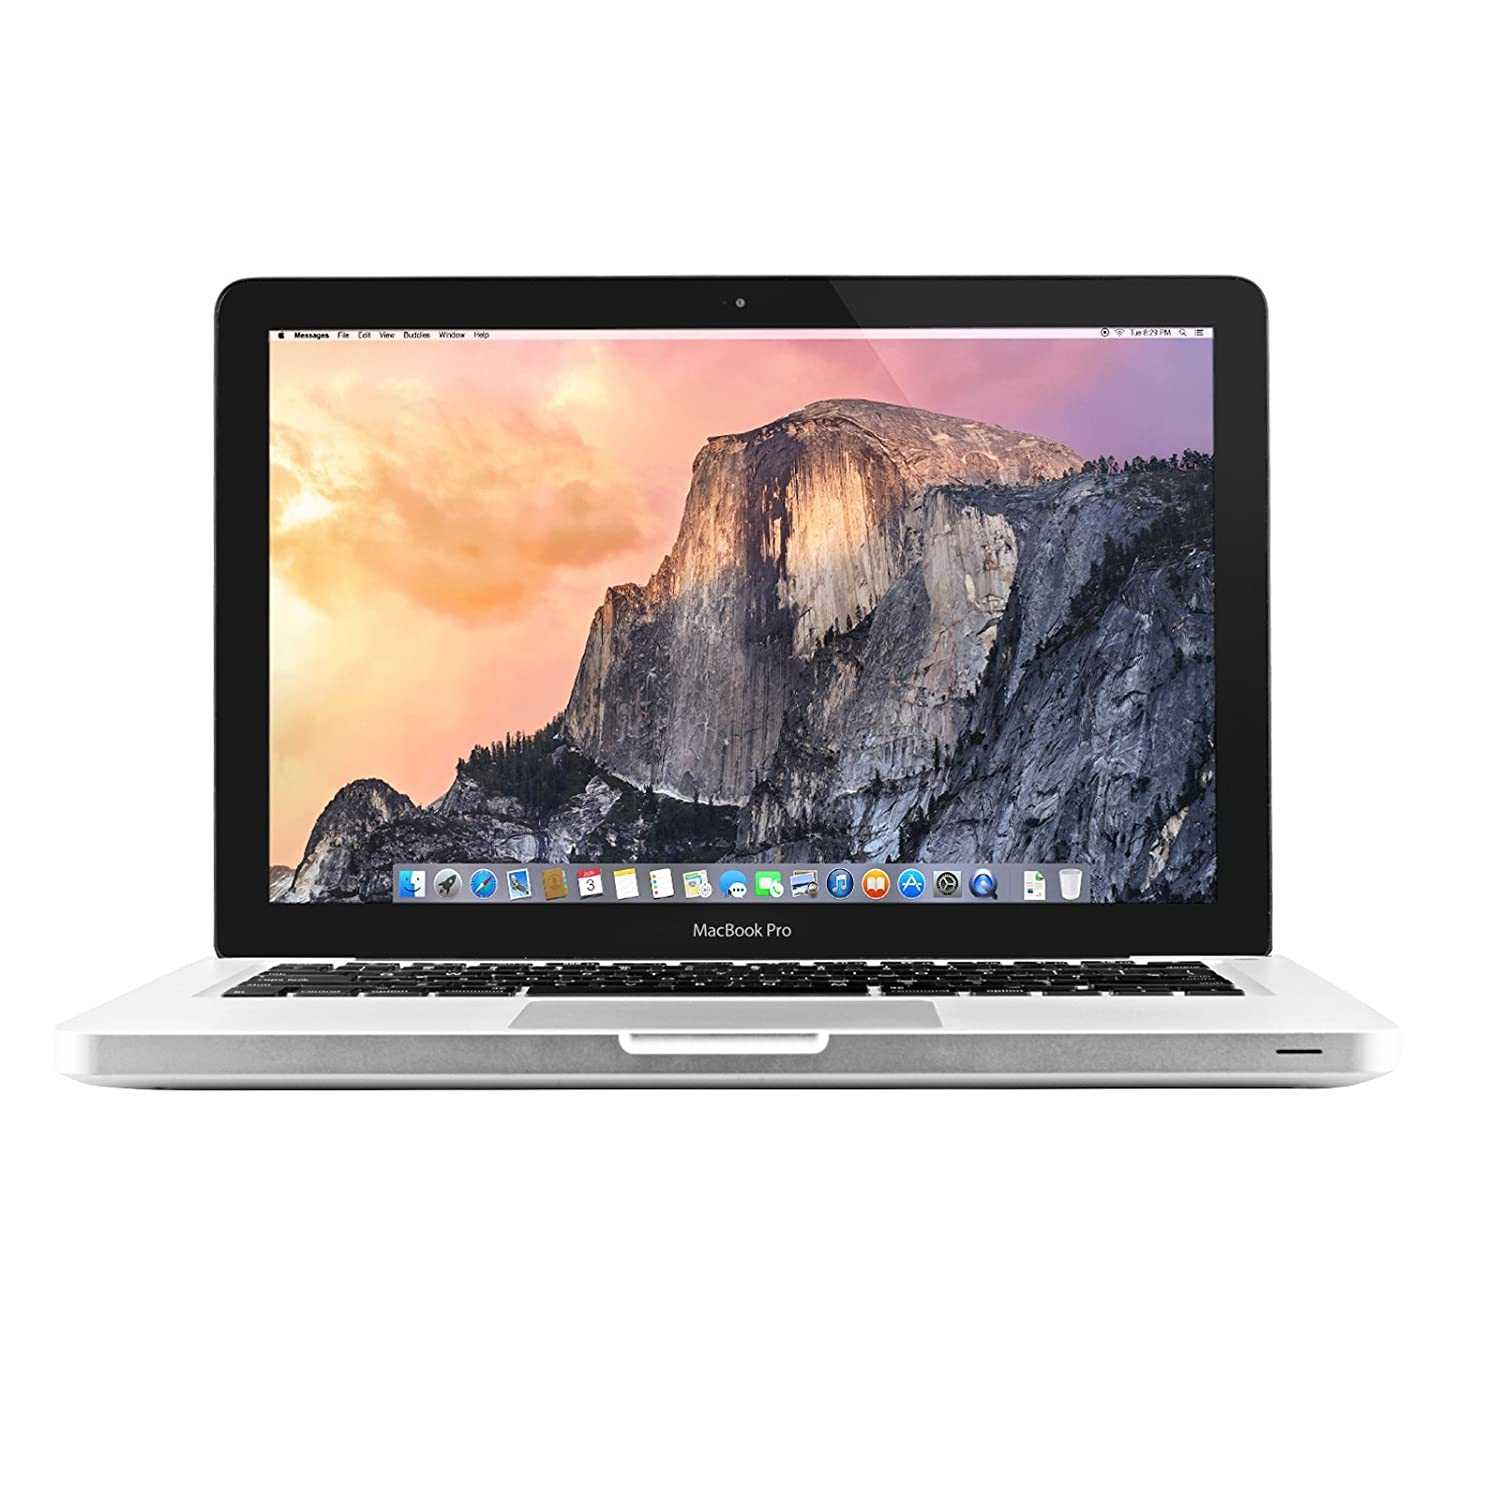 Apple MacBook Pro 13 (Mid 2012) - Core i7 2 9GHz, 8GB, 750GB HDD (Renewed)